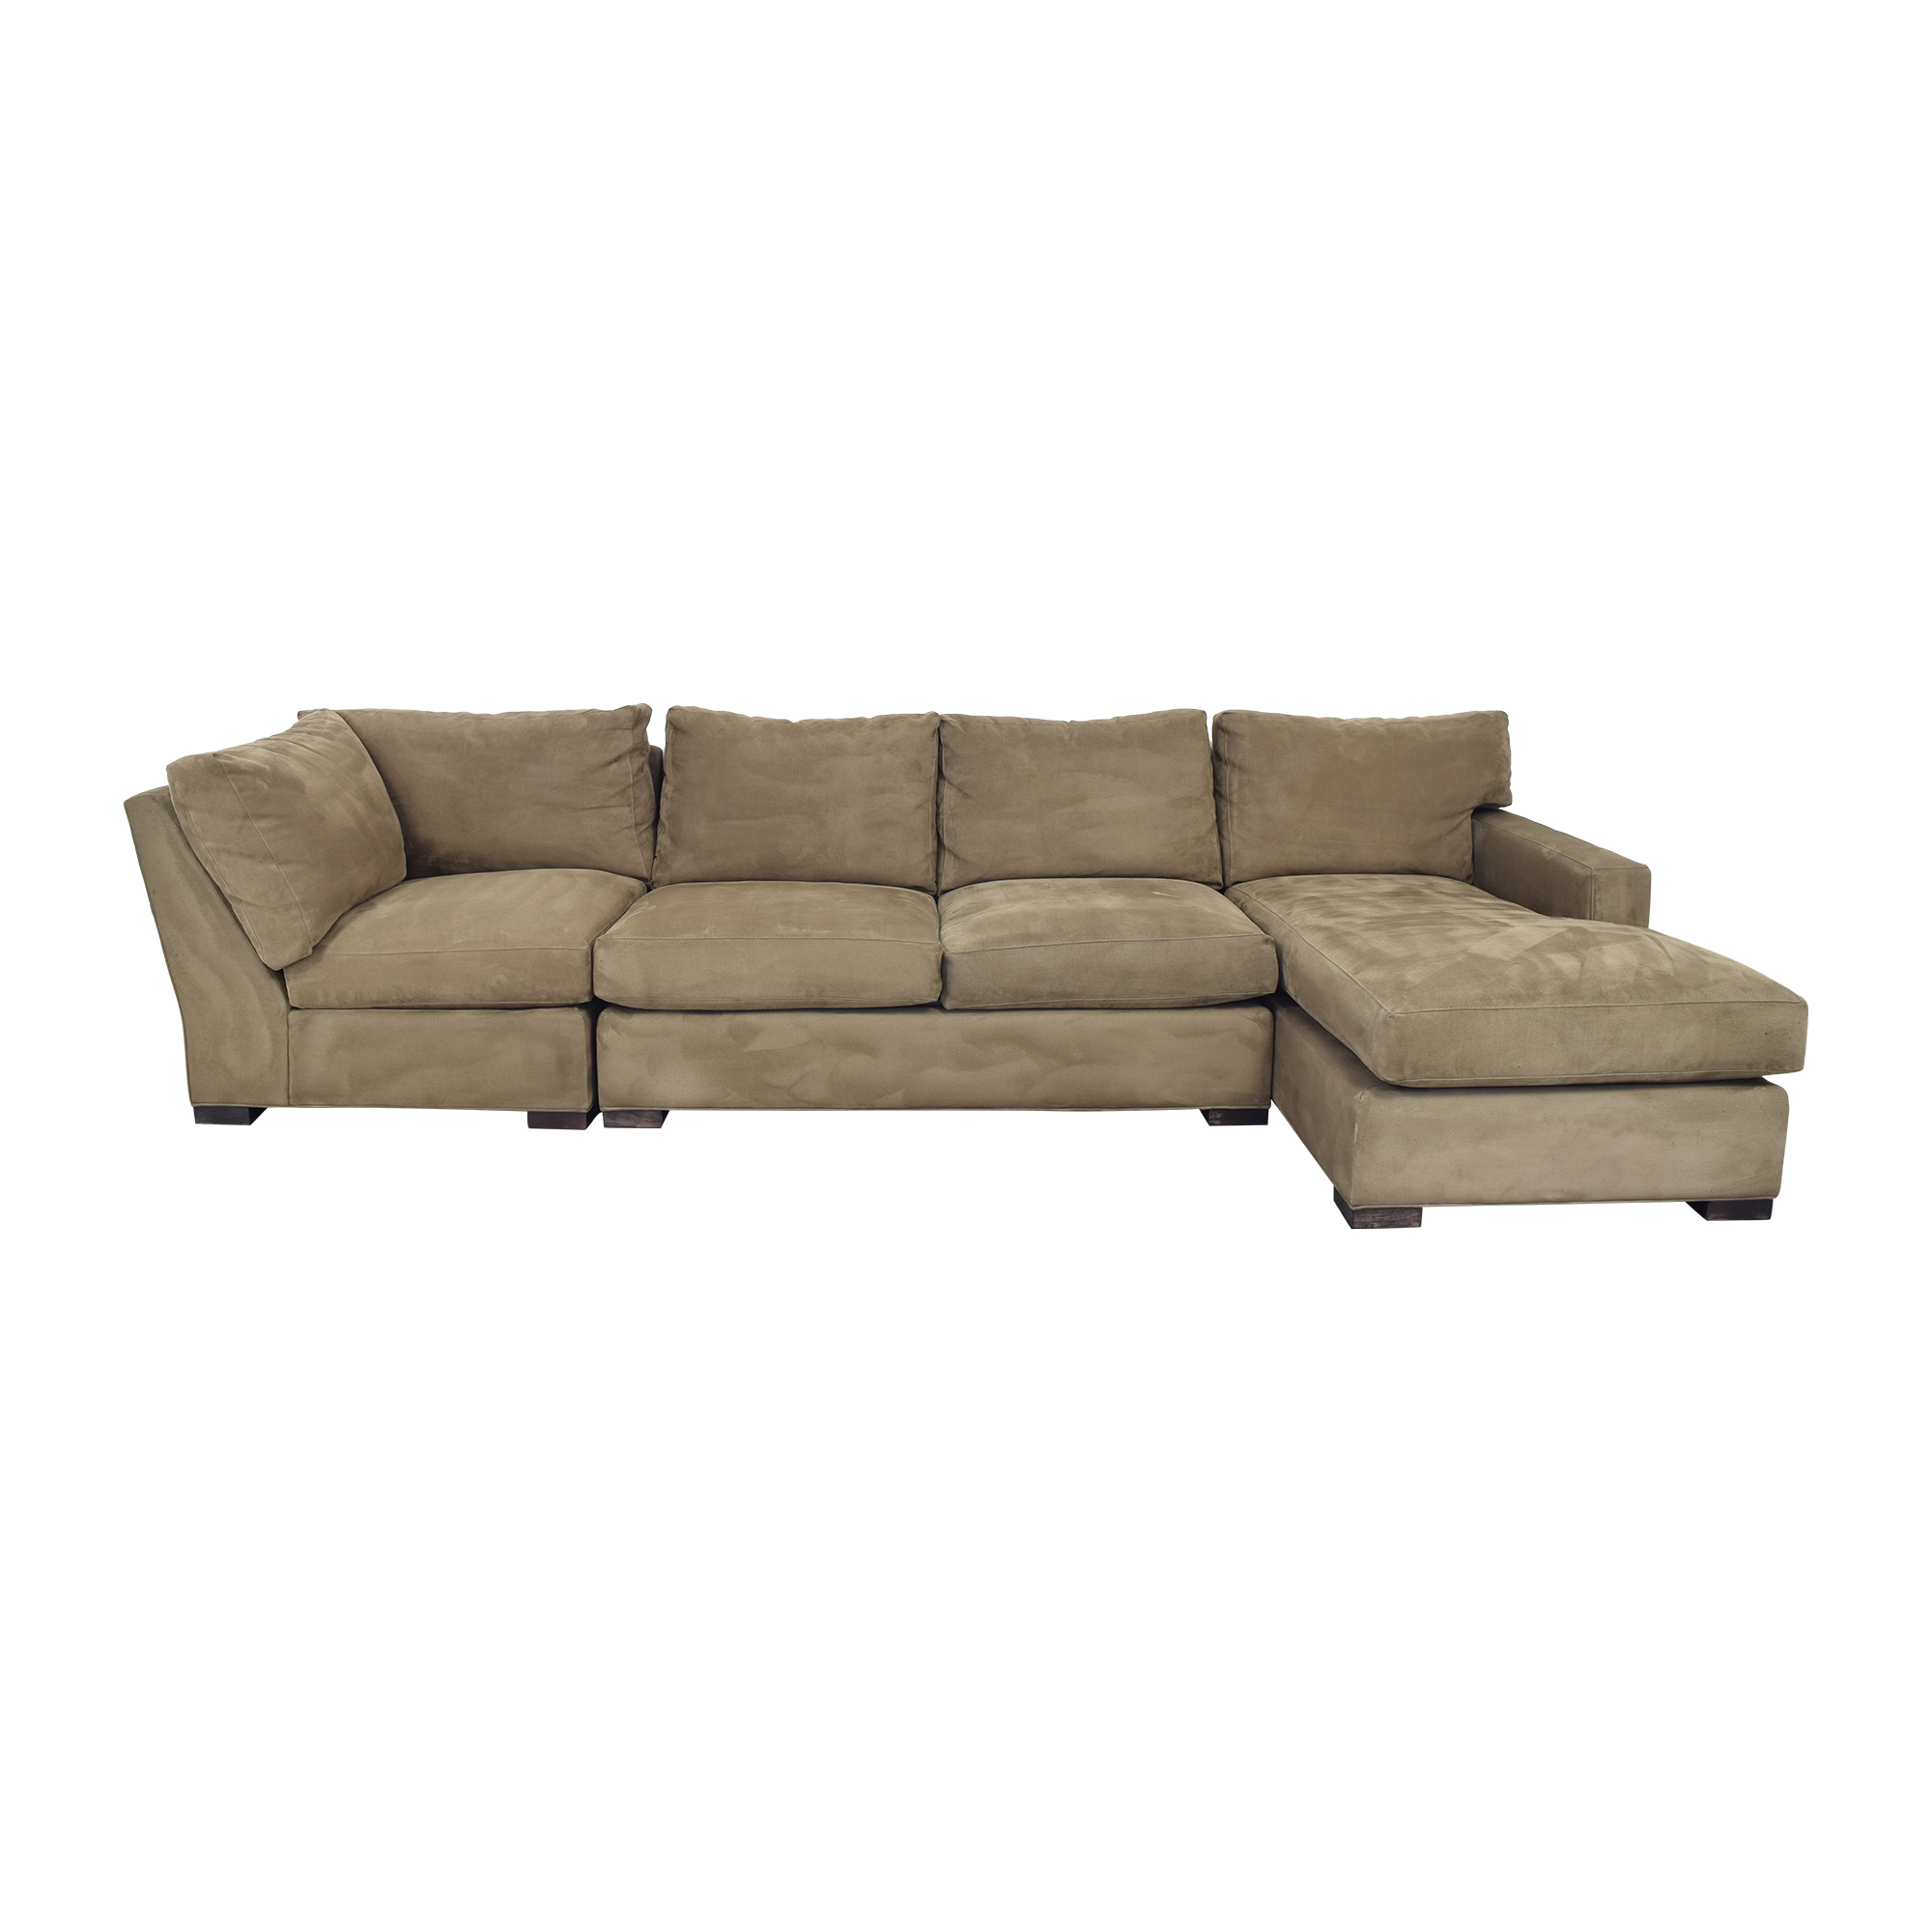 Crate & Barrel Crate & Barrel Custom Axis Sectional Sofa on sale